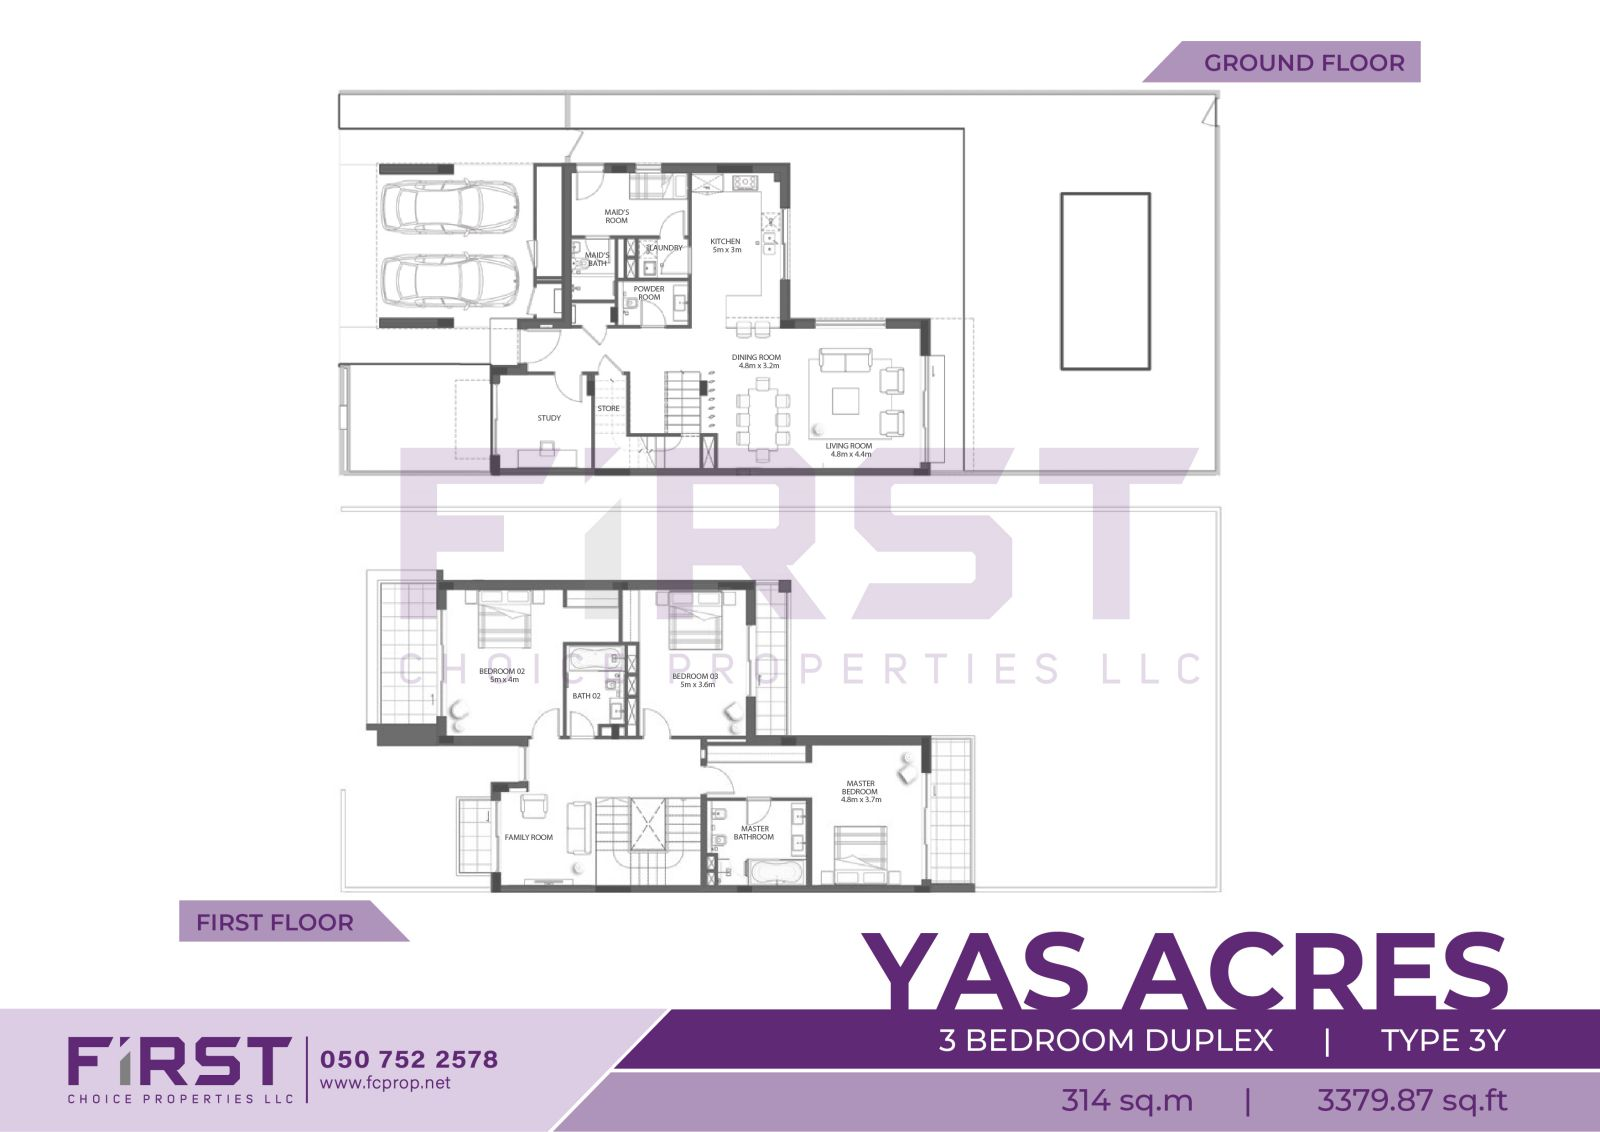 Floor Plan of 3 Bedroom Duplex Type 3Y in Yas Acres Yas Island Abu Dhabi UAE 314 sq.m 3379.87 sq.ft.jpg